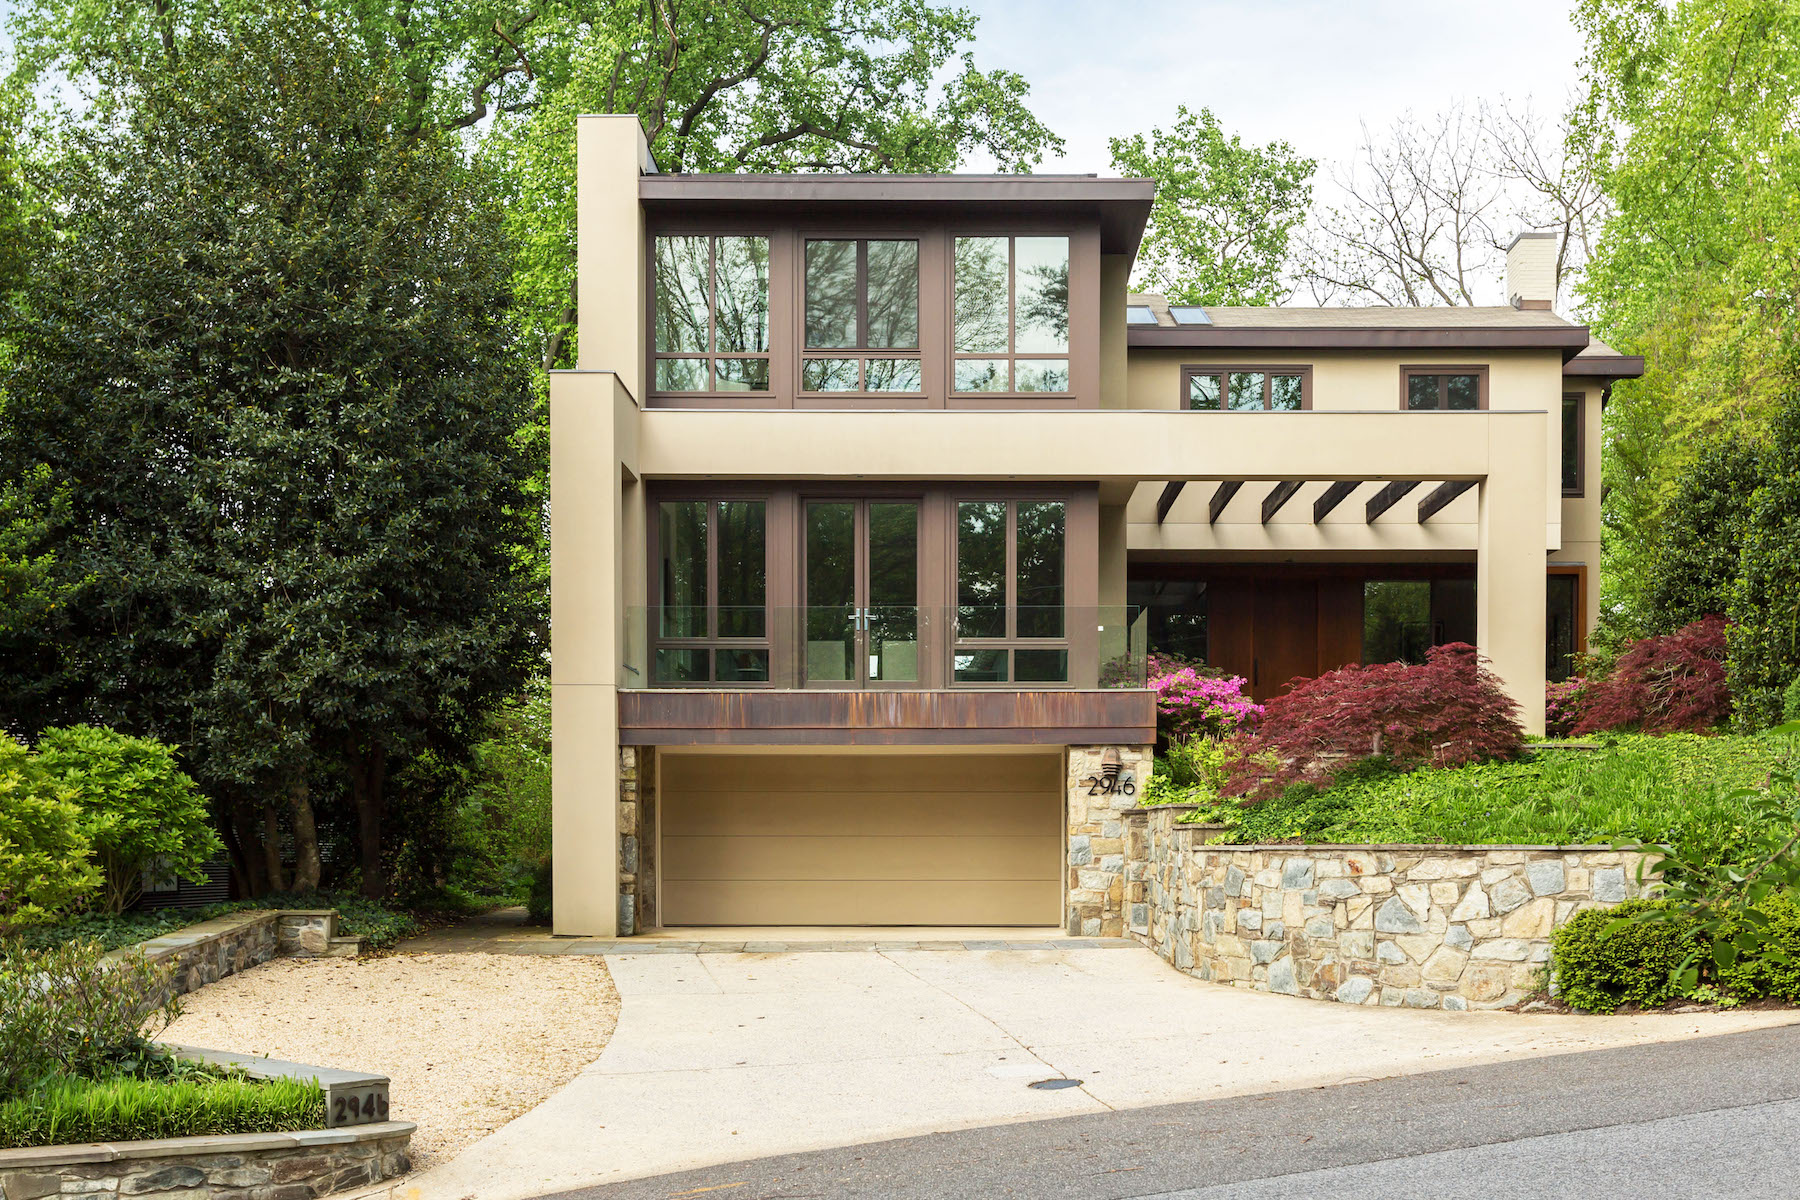 Single Family Home for Sale at Kent 2946 Chain Bridge Road Nw Washington, District Of Columbia 20016 United States